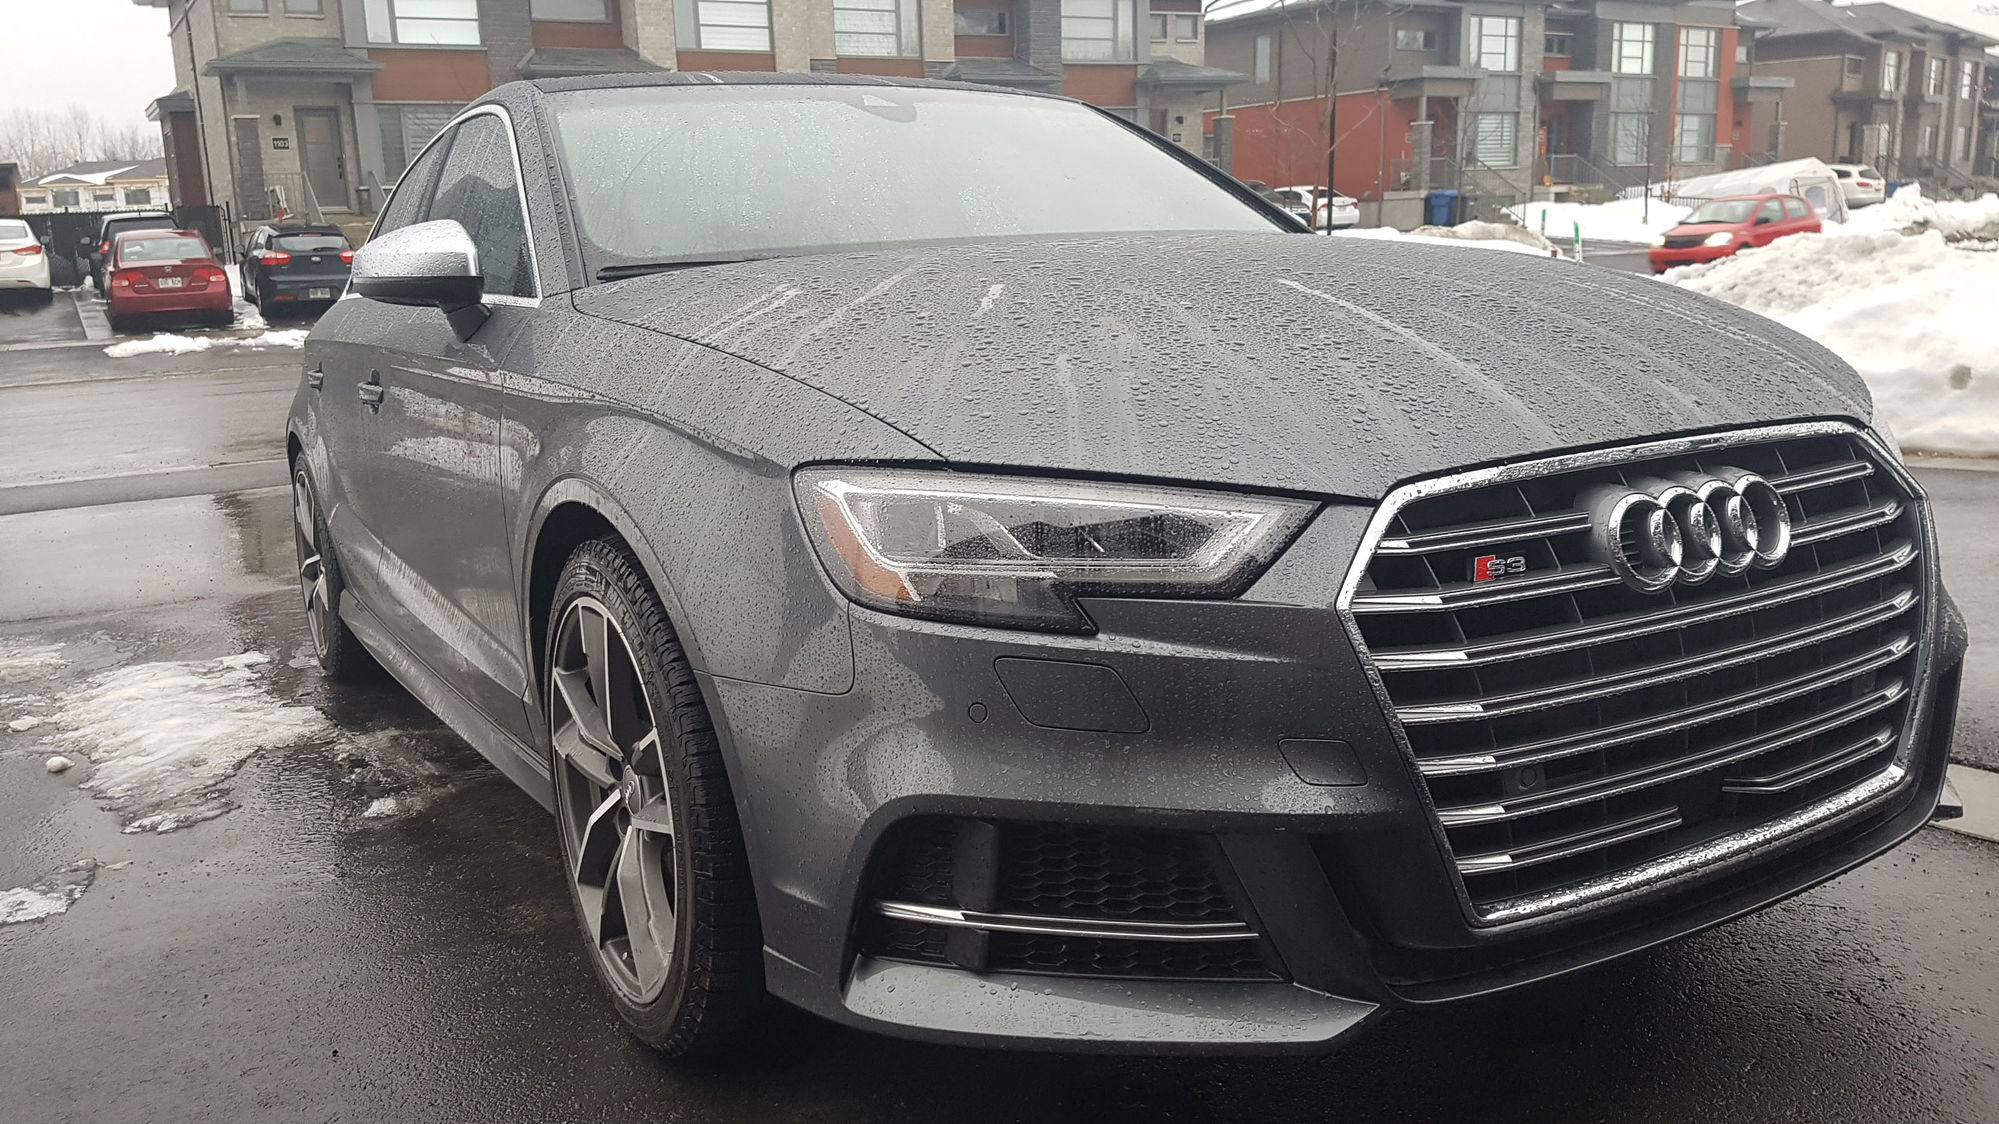 Finally Pics Of The New S3 Page 9 Audiworld Forums